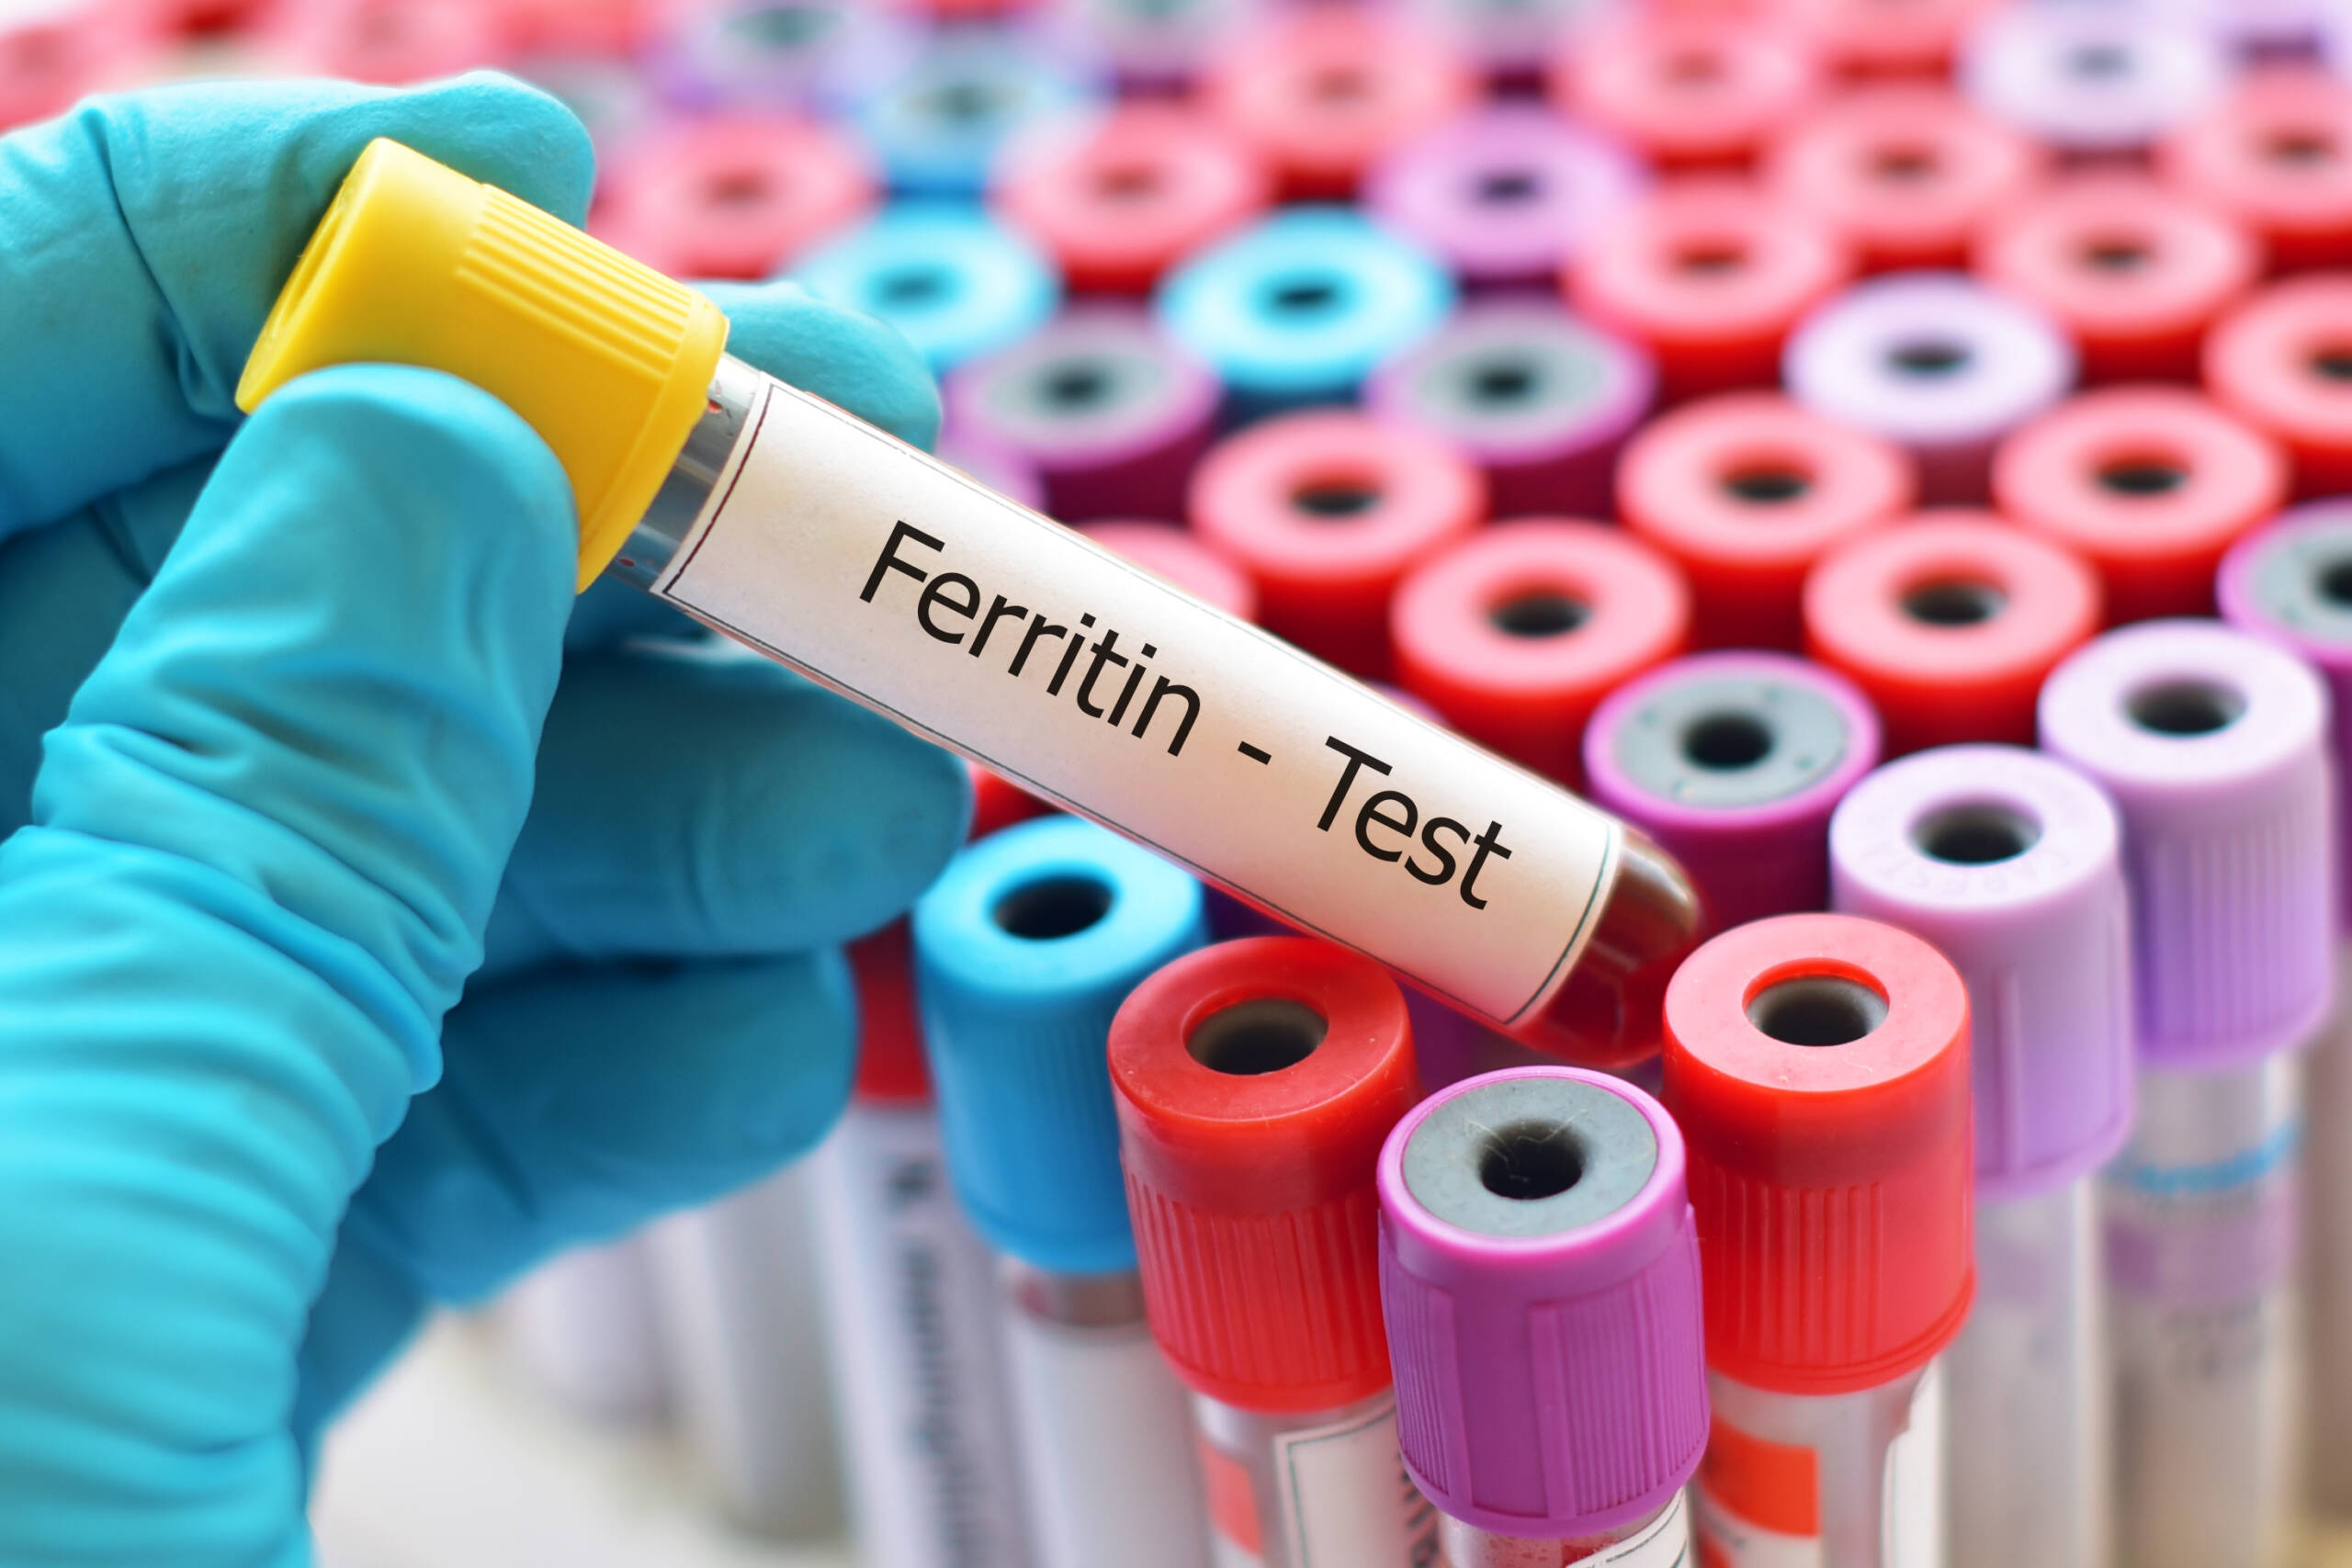 Ferritin concentration is associated with COVID-19 disease progression.